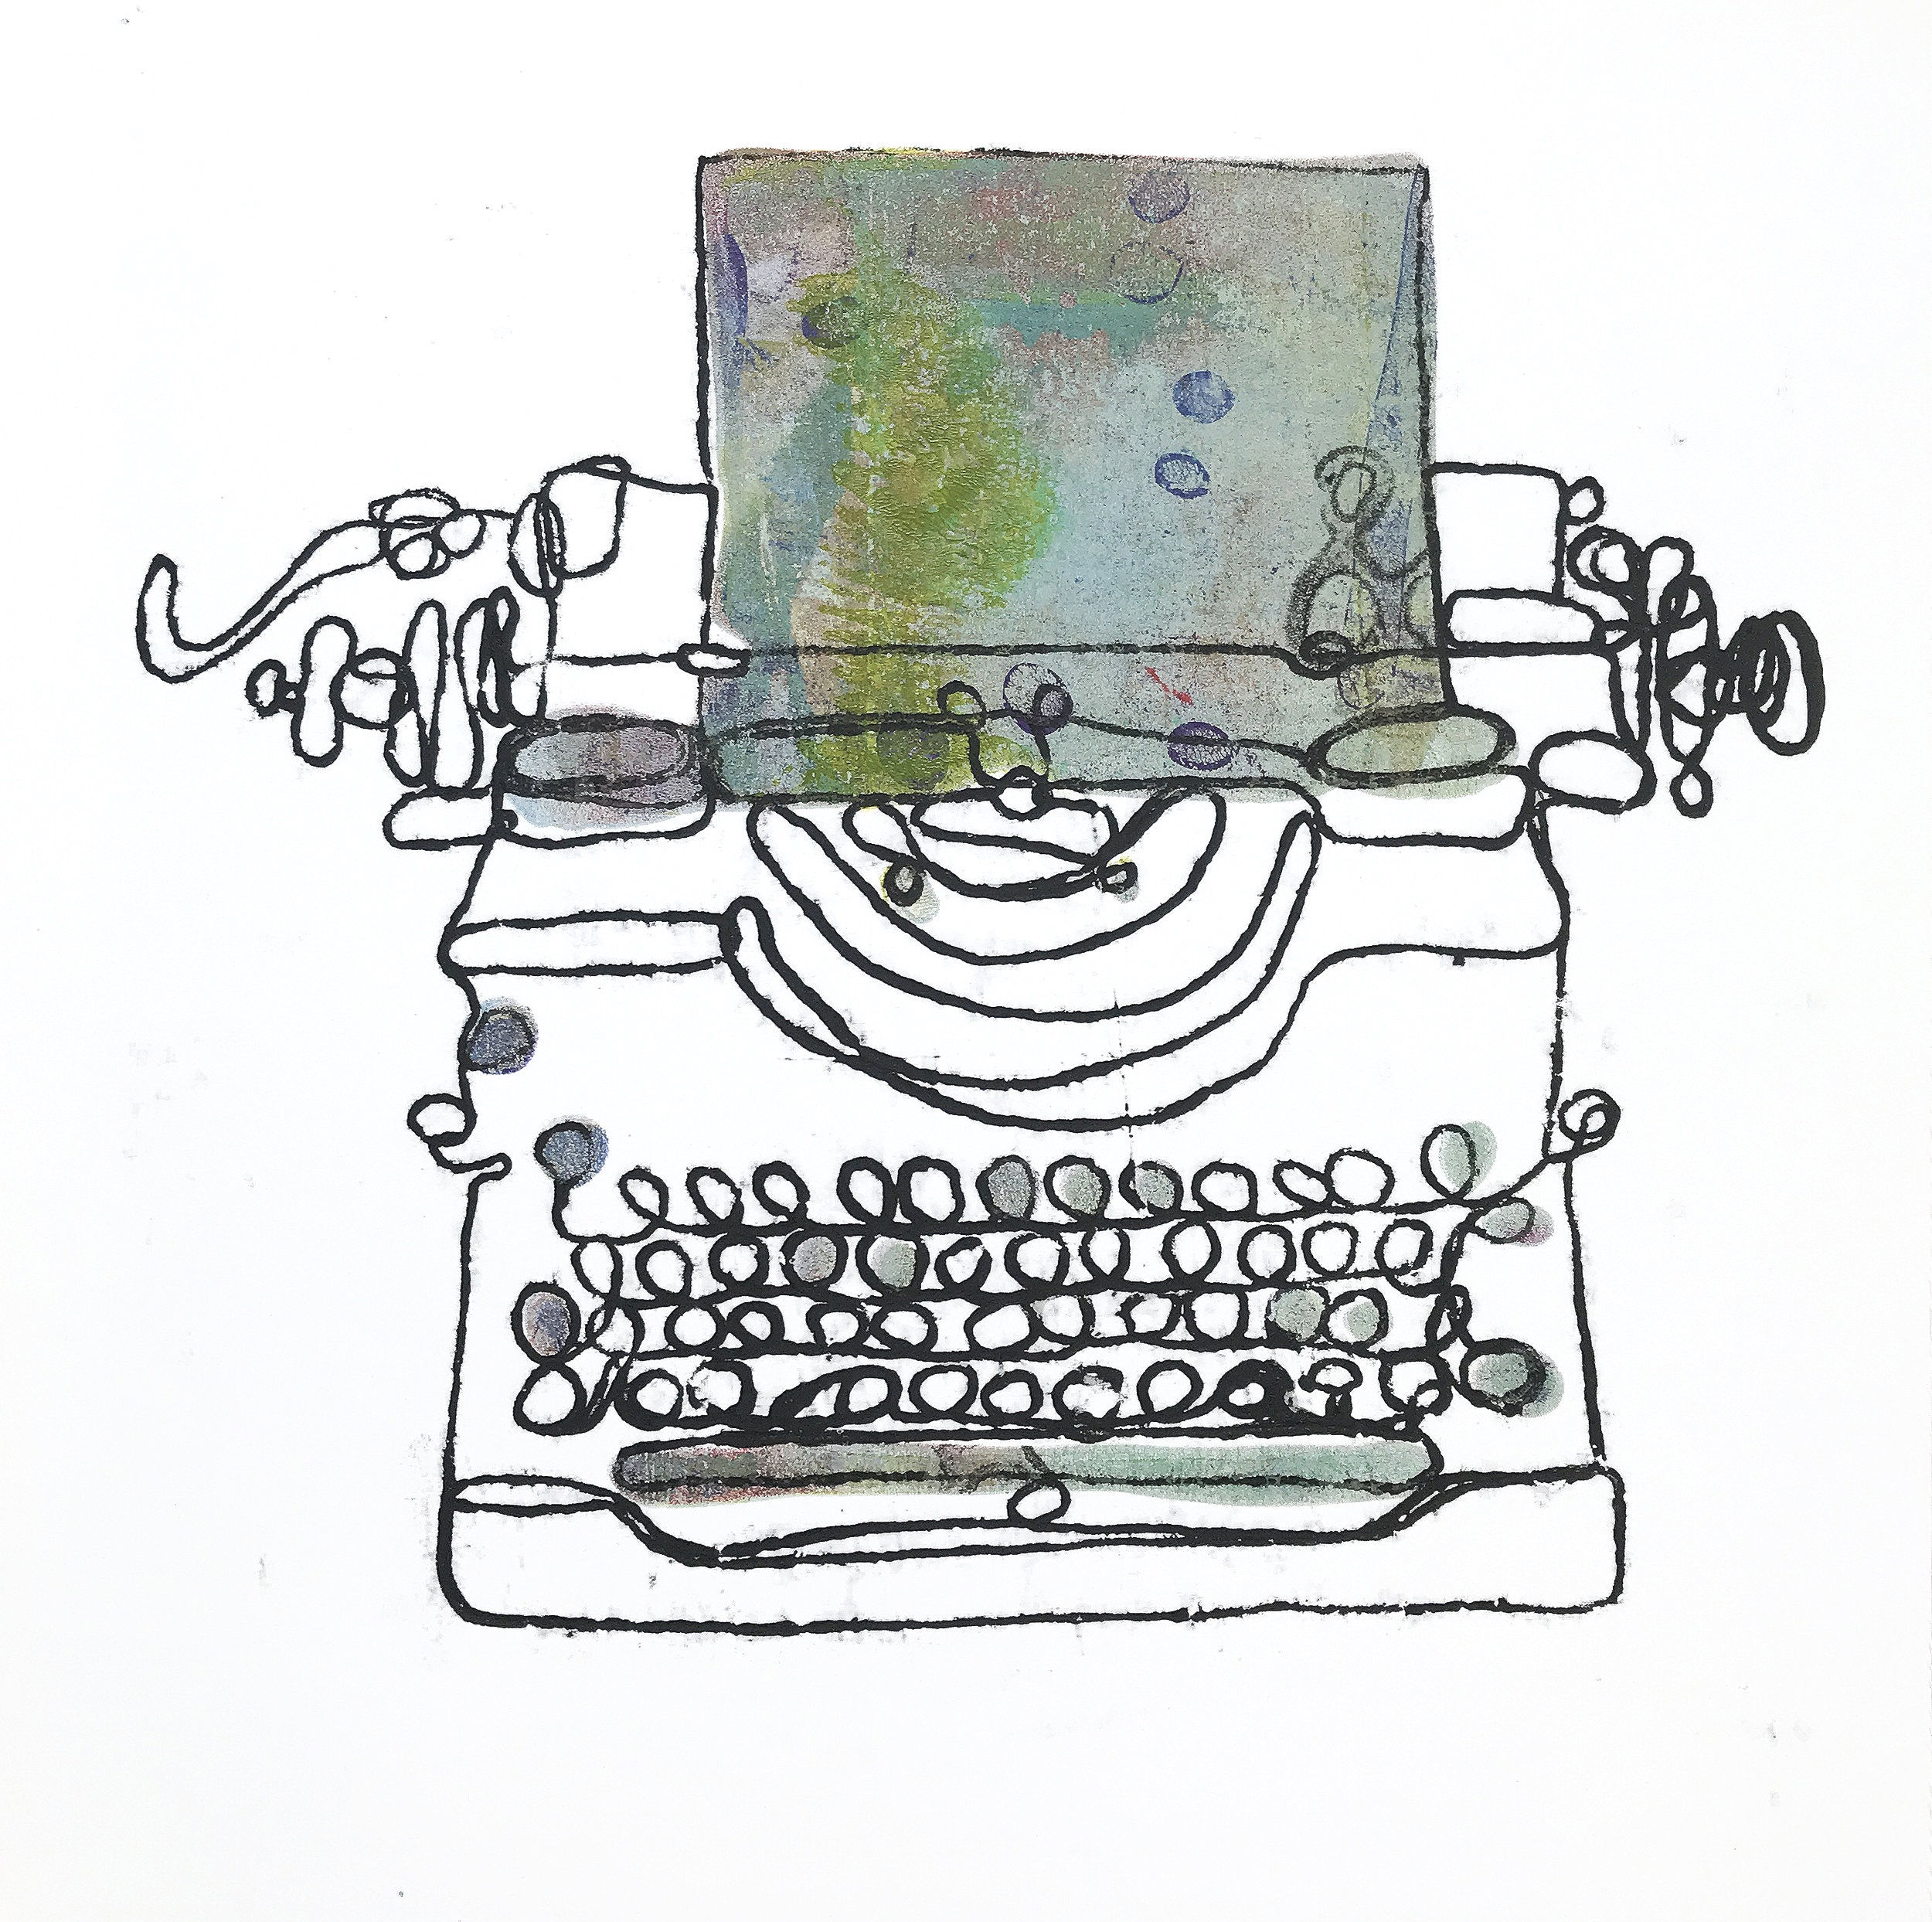 Typewriter Monoprint (number 3) & what happens next in your story?